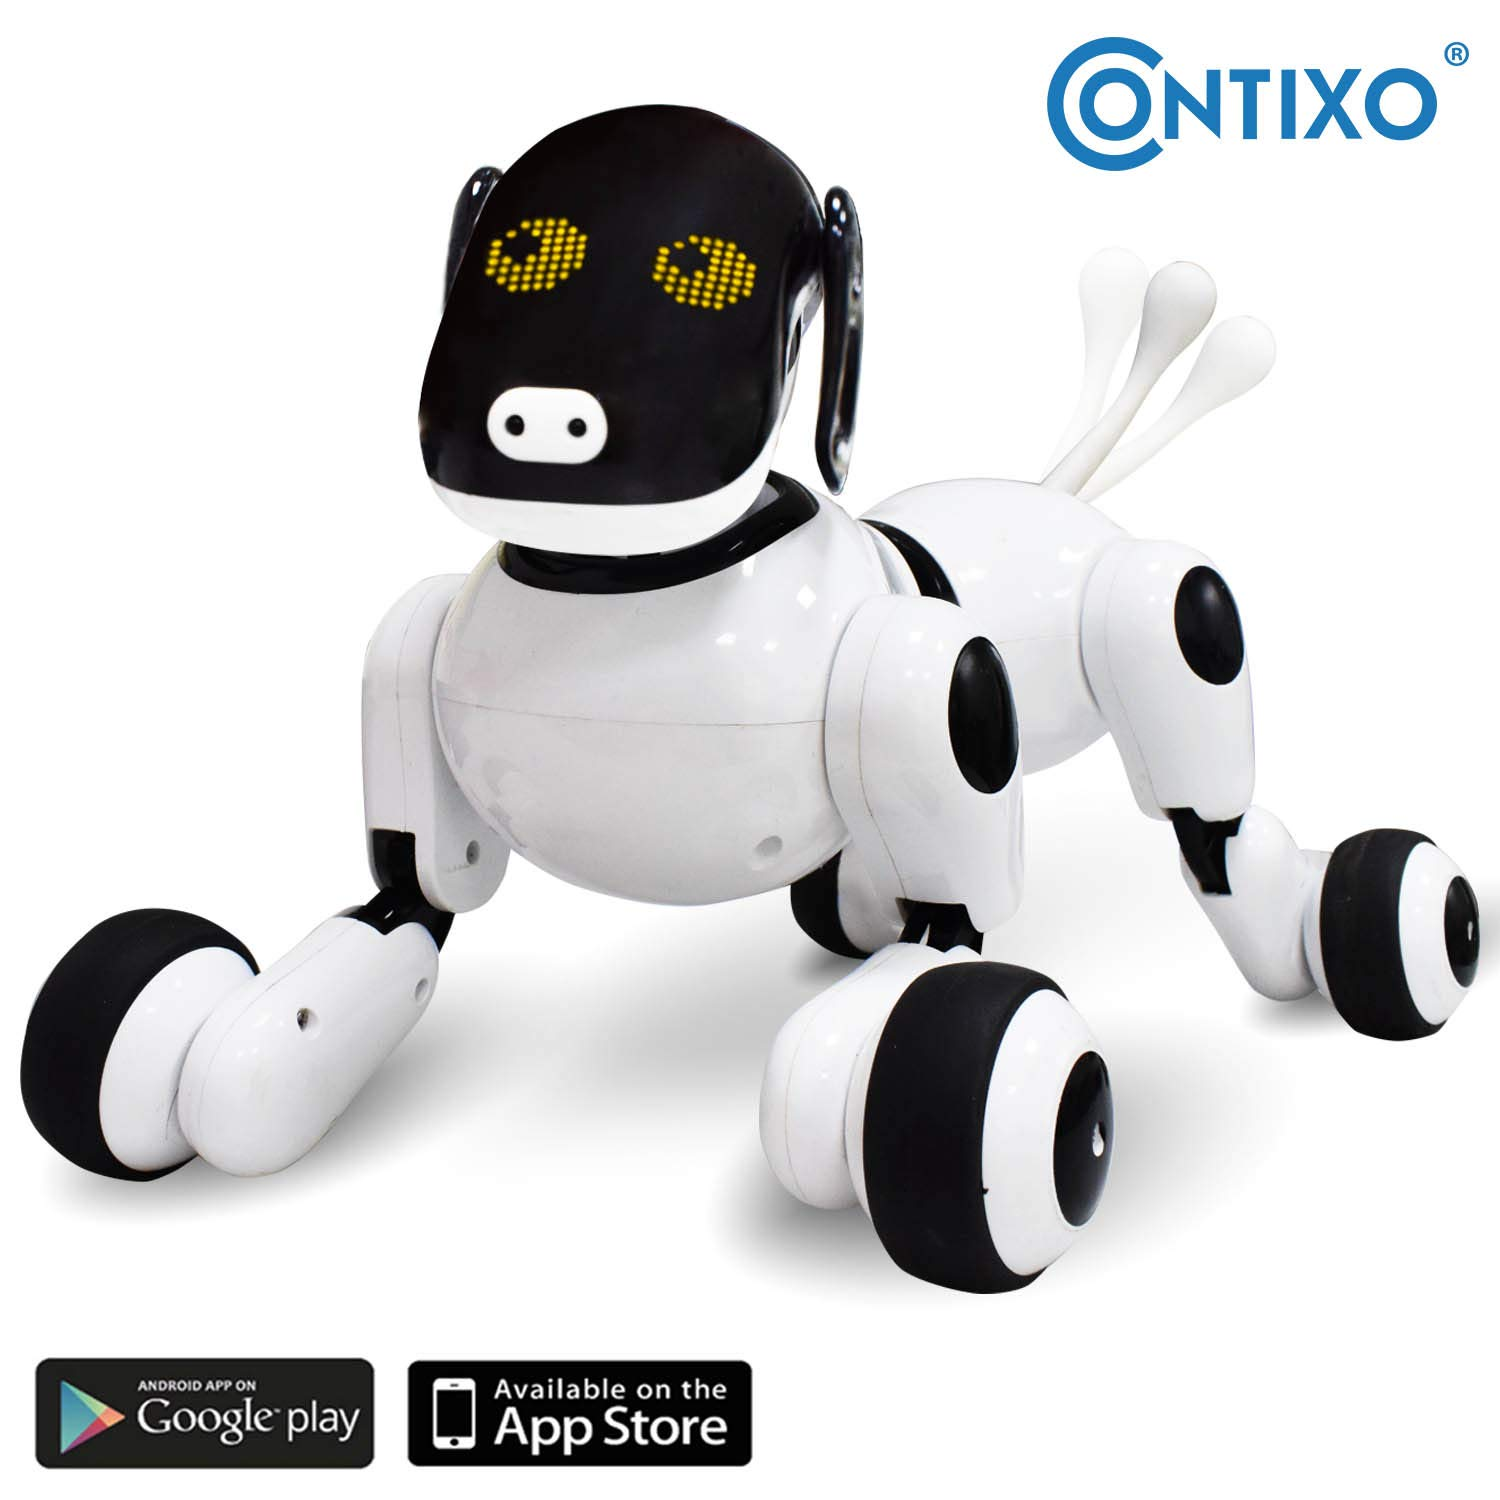 Contixo Independance Day Puppy Smart Interactive Robot Pet Toy for Kids, Voice, App, and Touch Controlled by Contixo (Image #1)